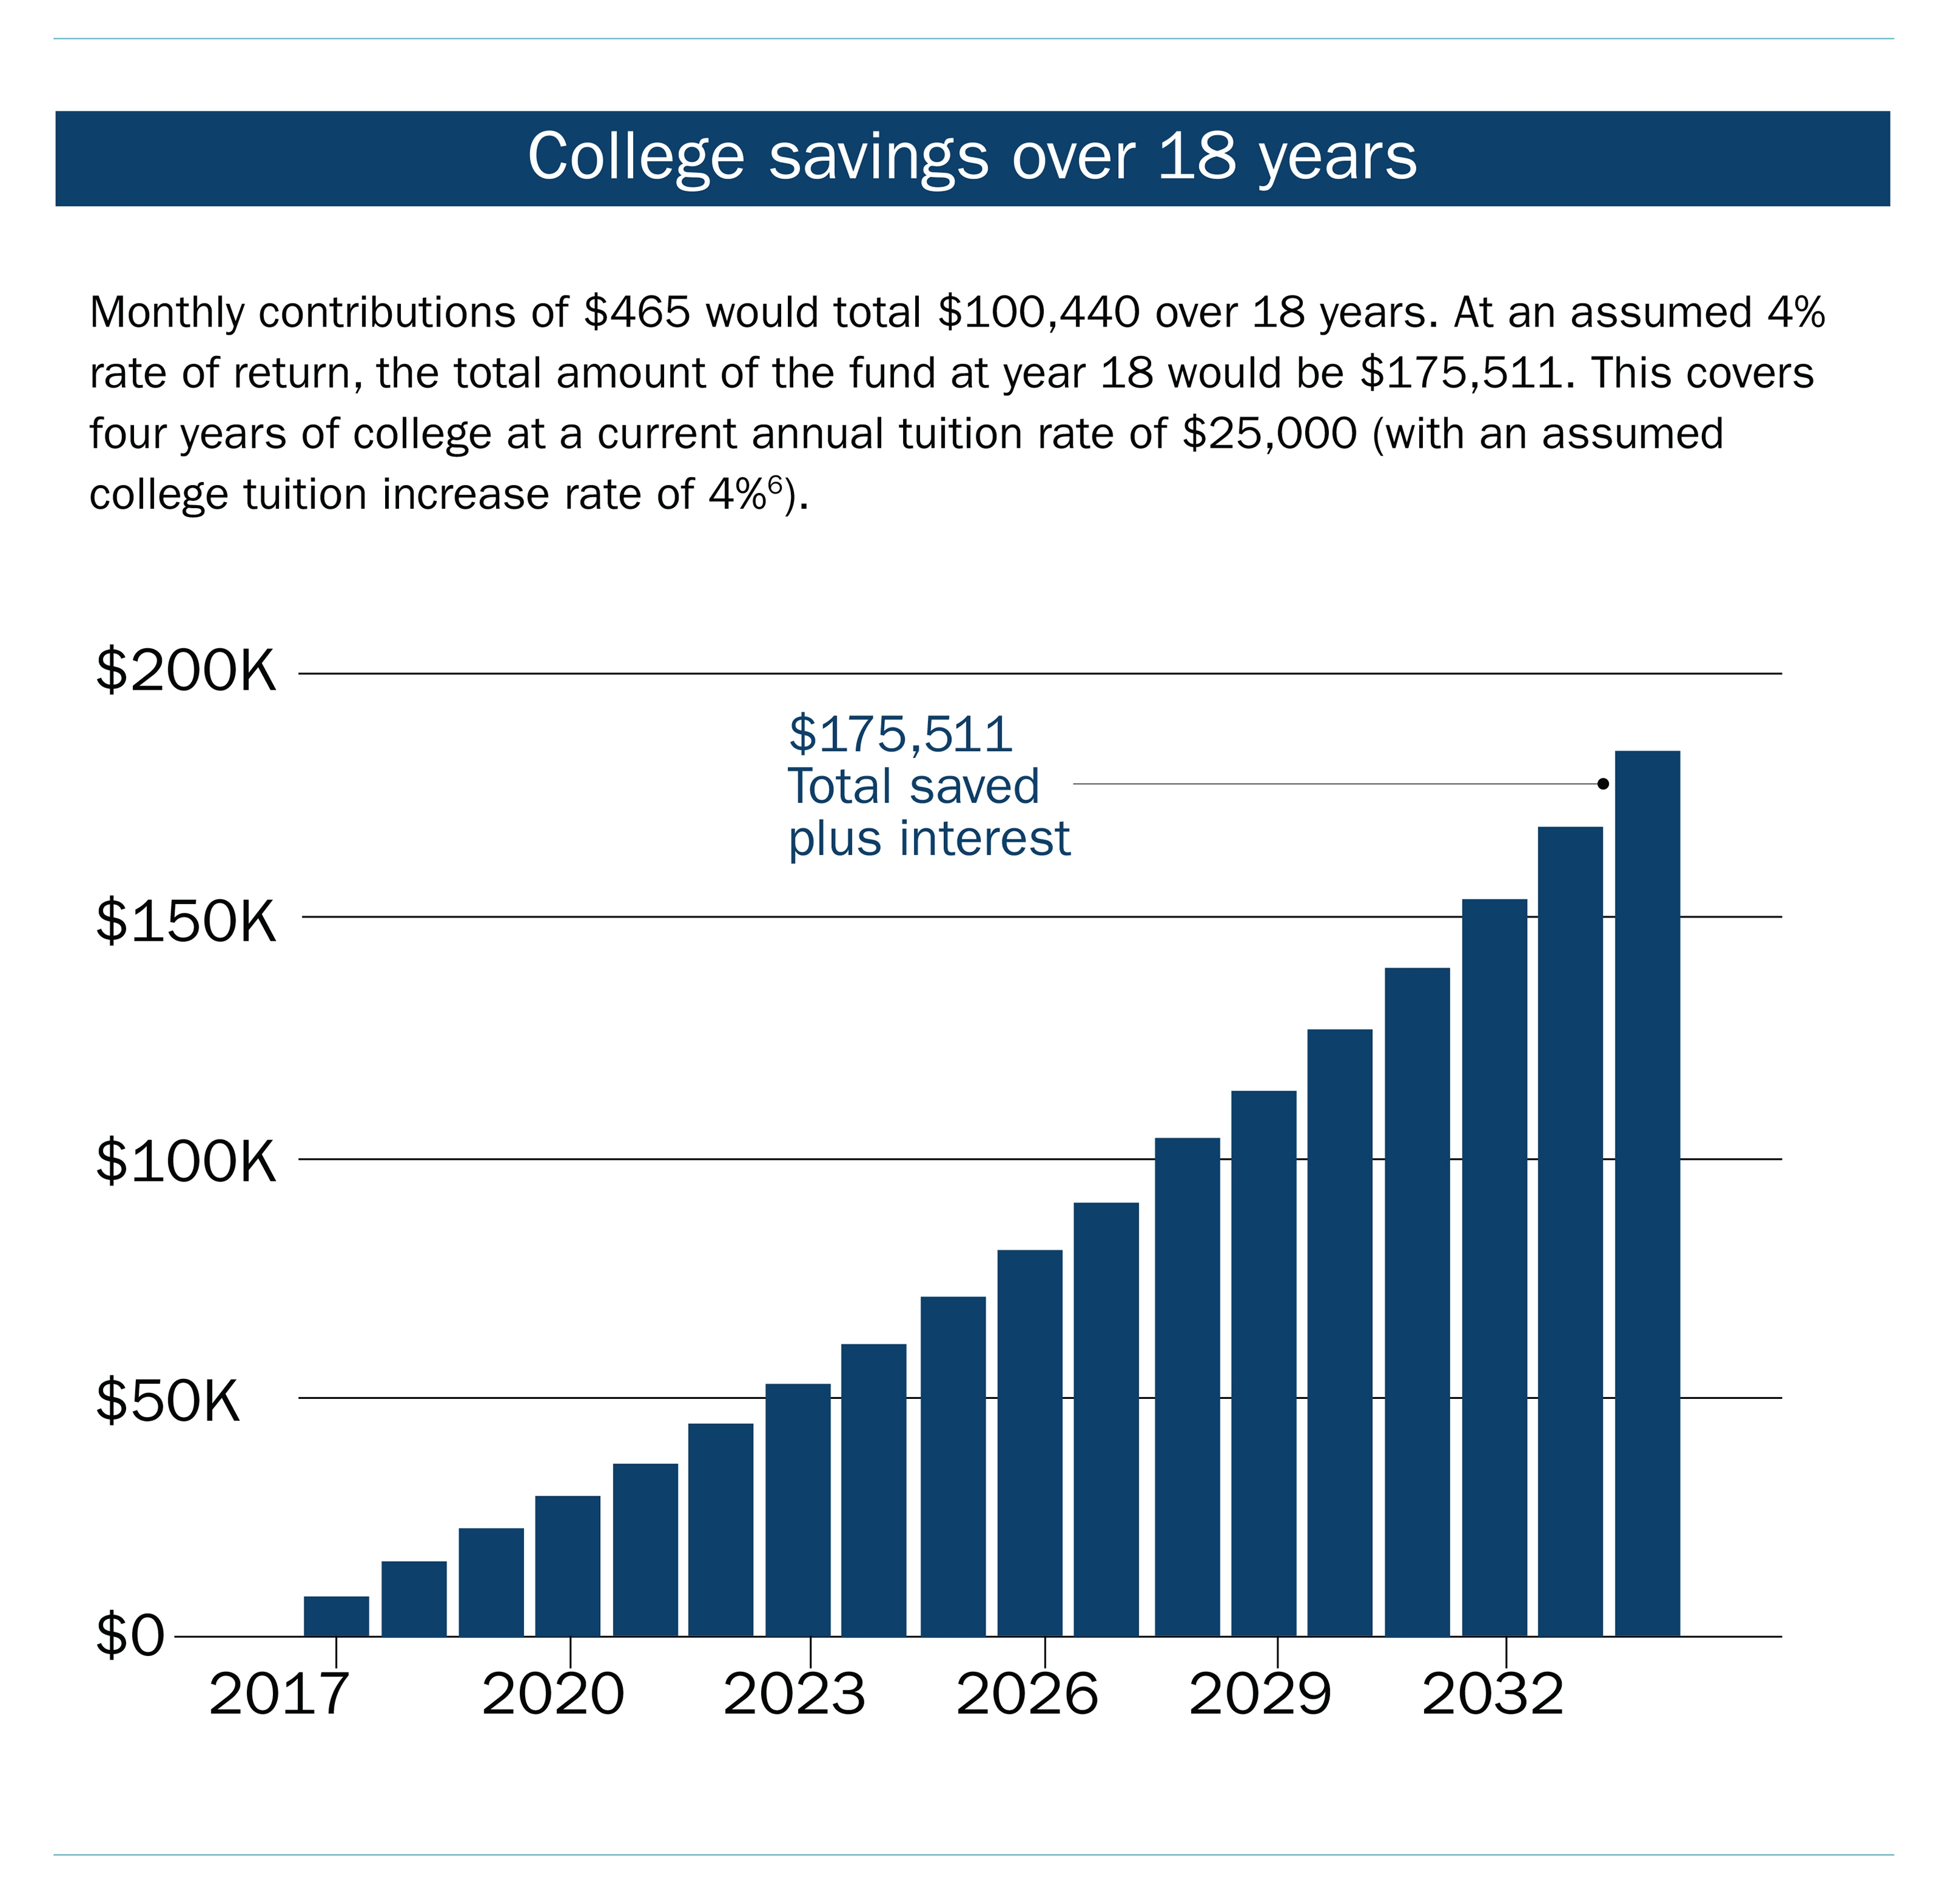 College savings fund over 18 years